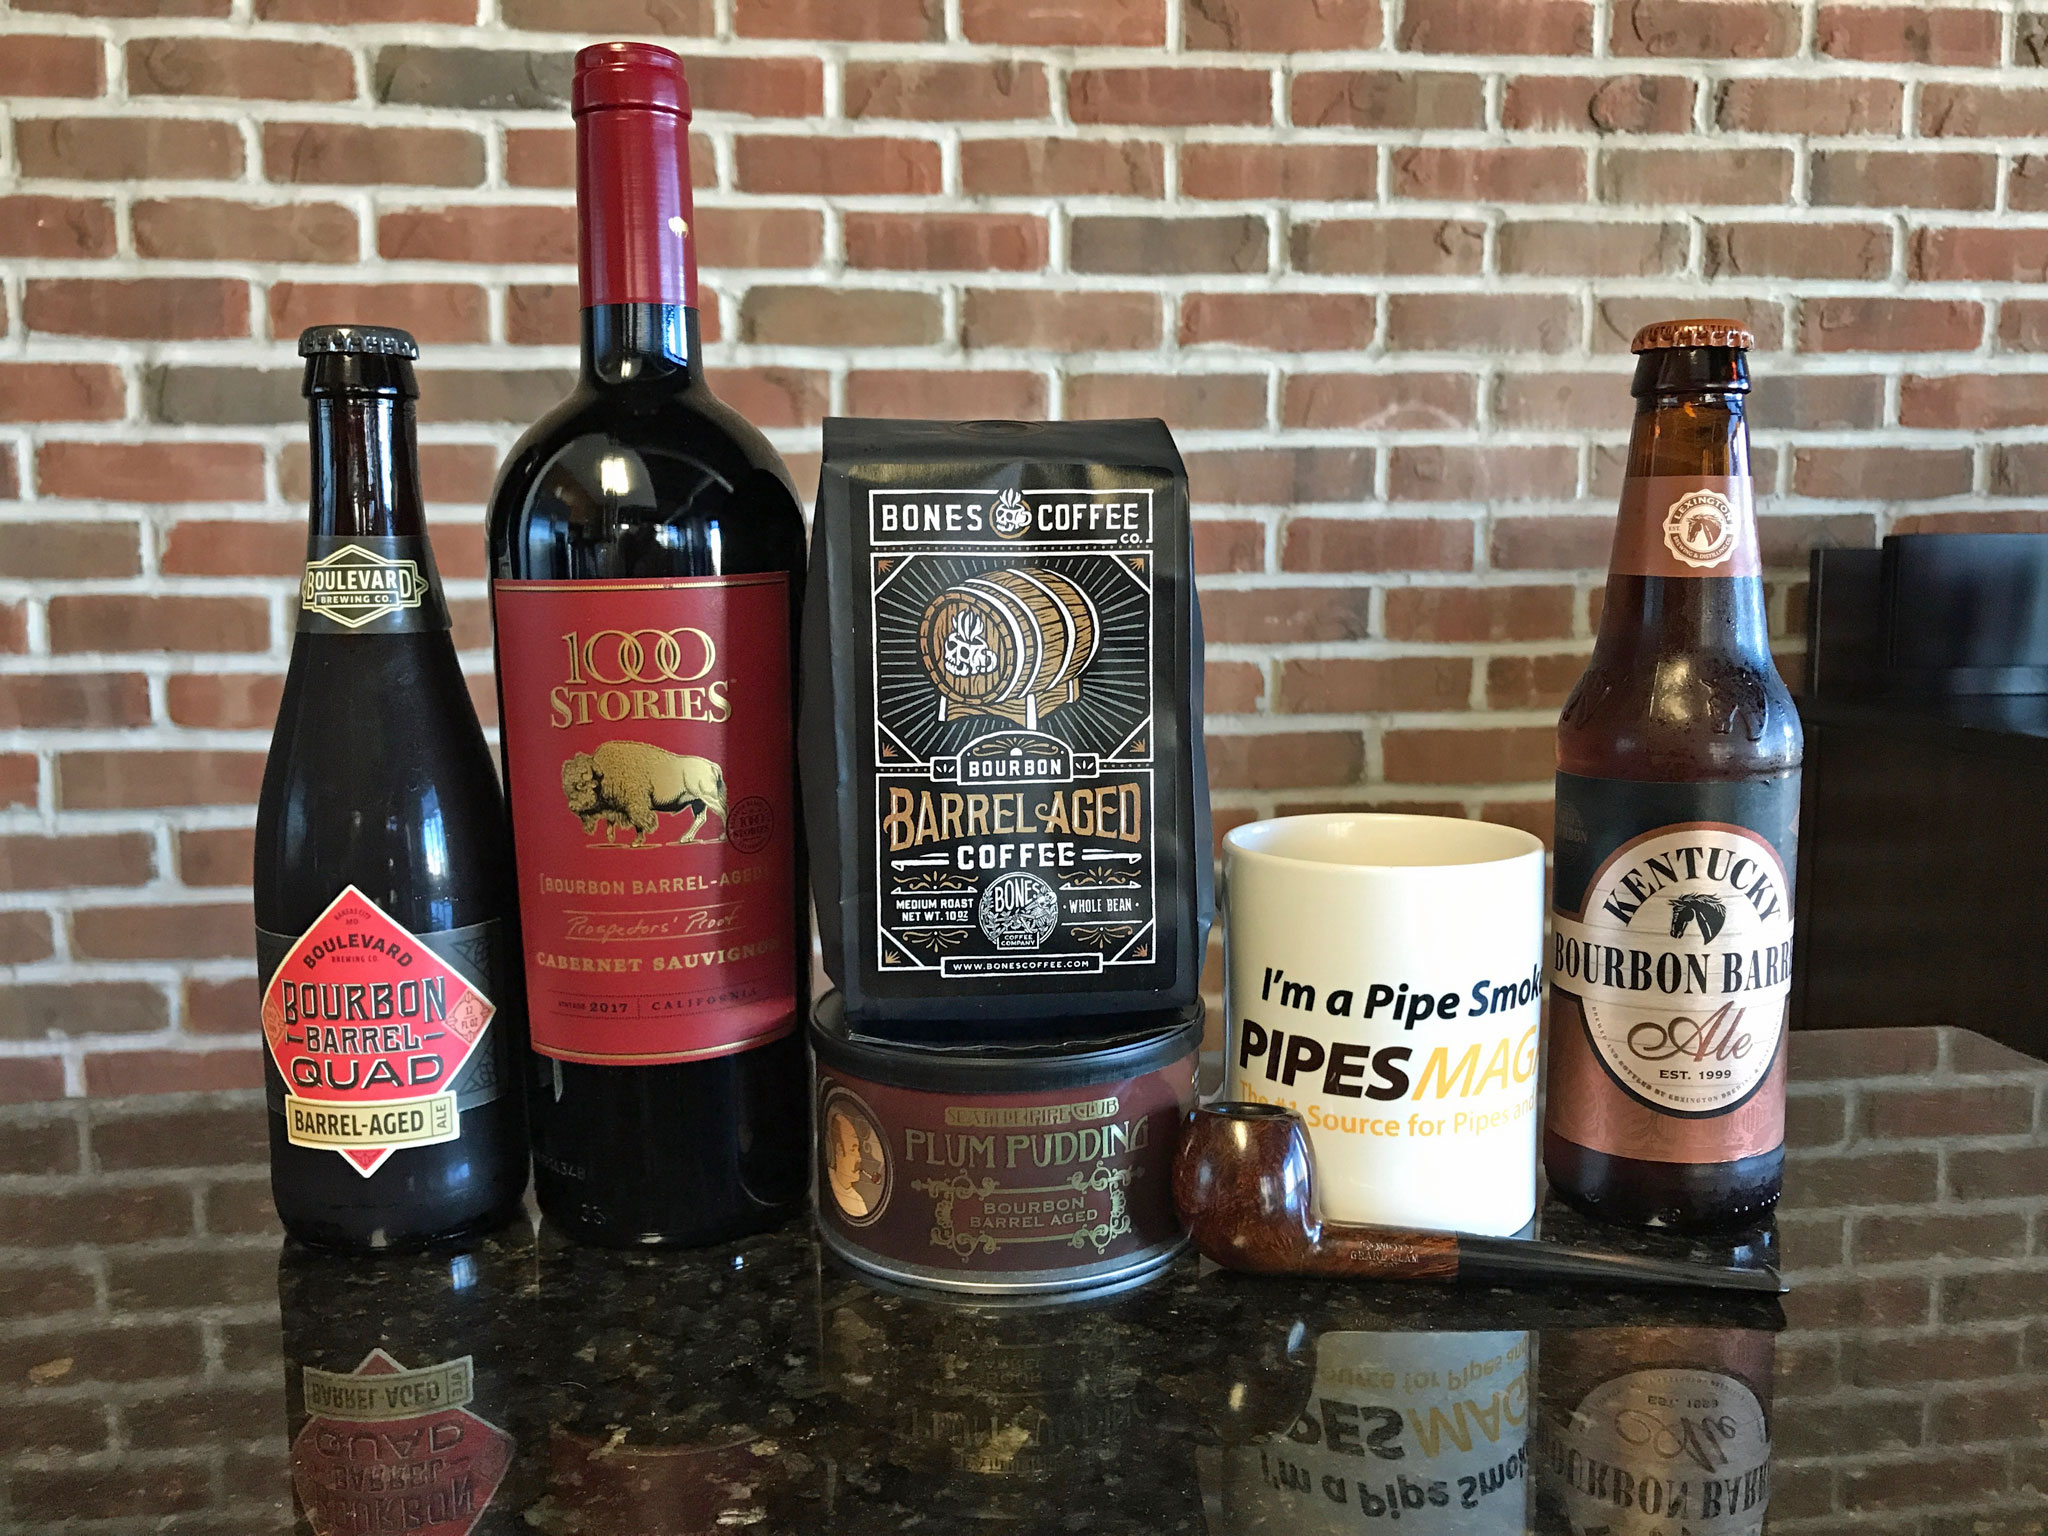 Some of My Favorite Bourbon Barrel Aged Stuff